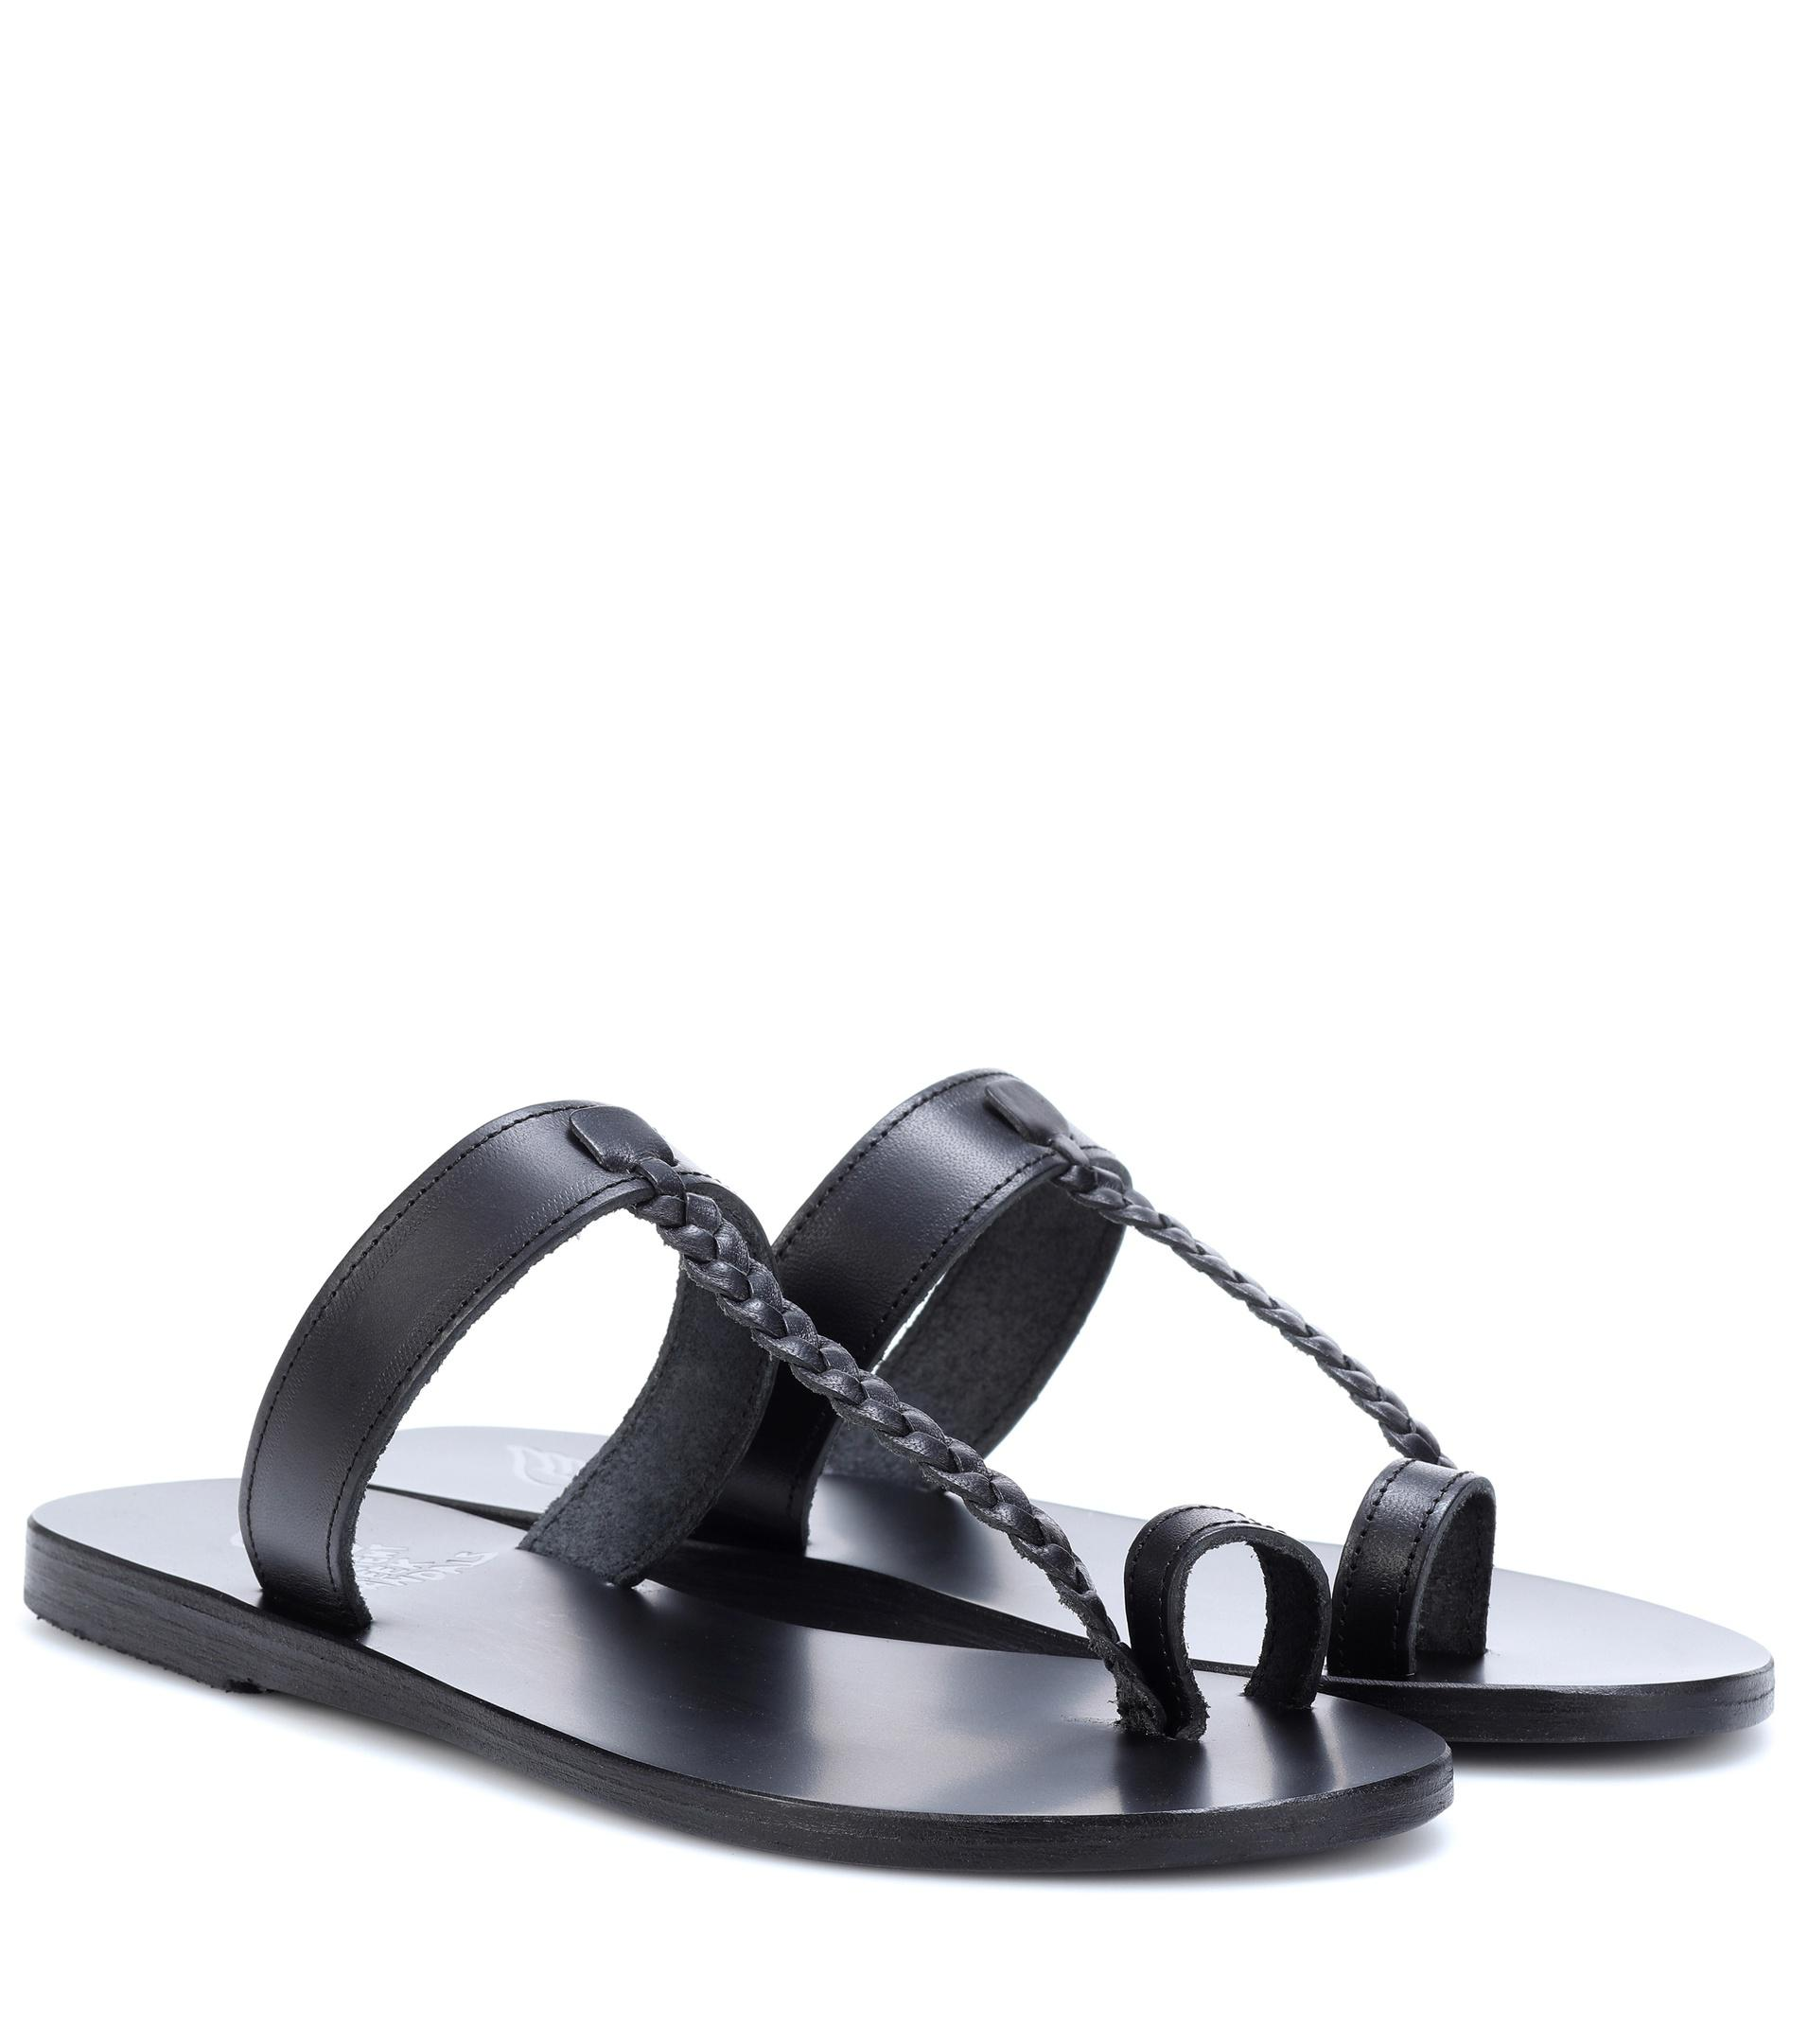 Melpomeni Nails Studded Leather Sandals - Black Ancient Greek Sandals 5XNIXScH4